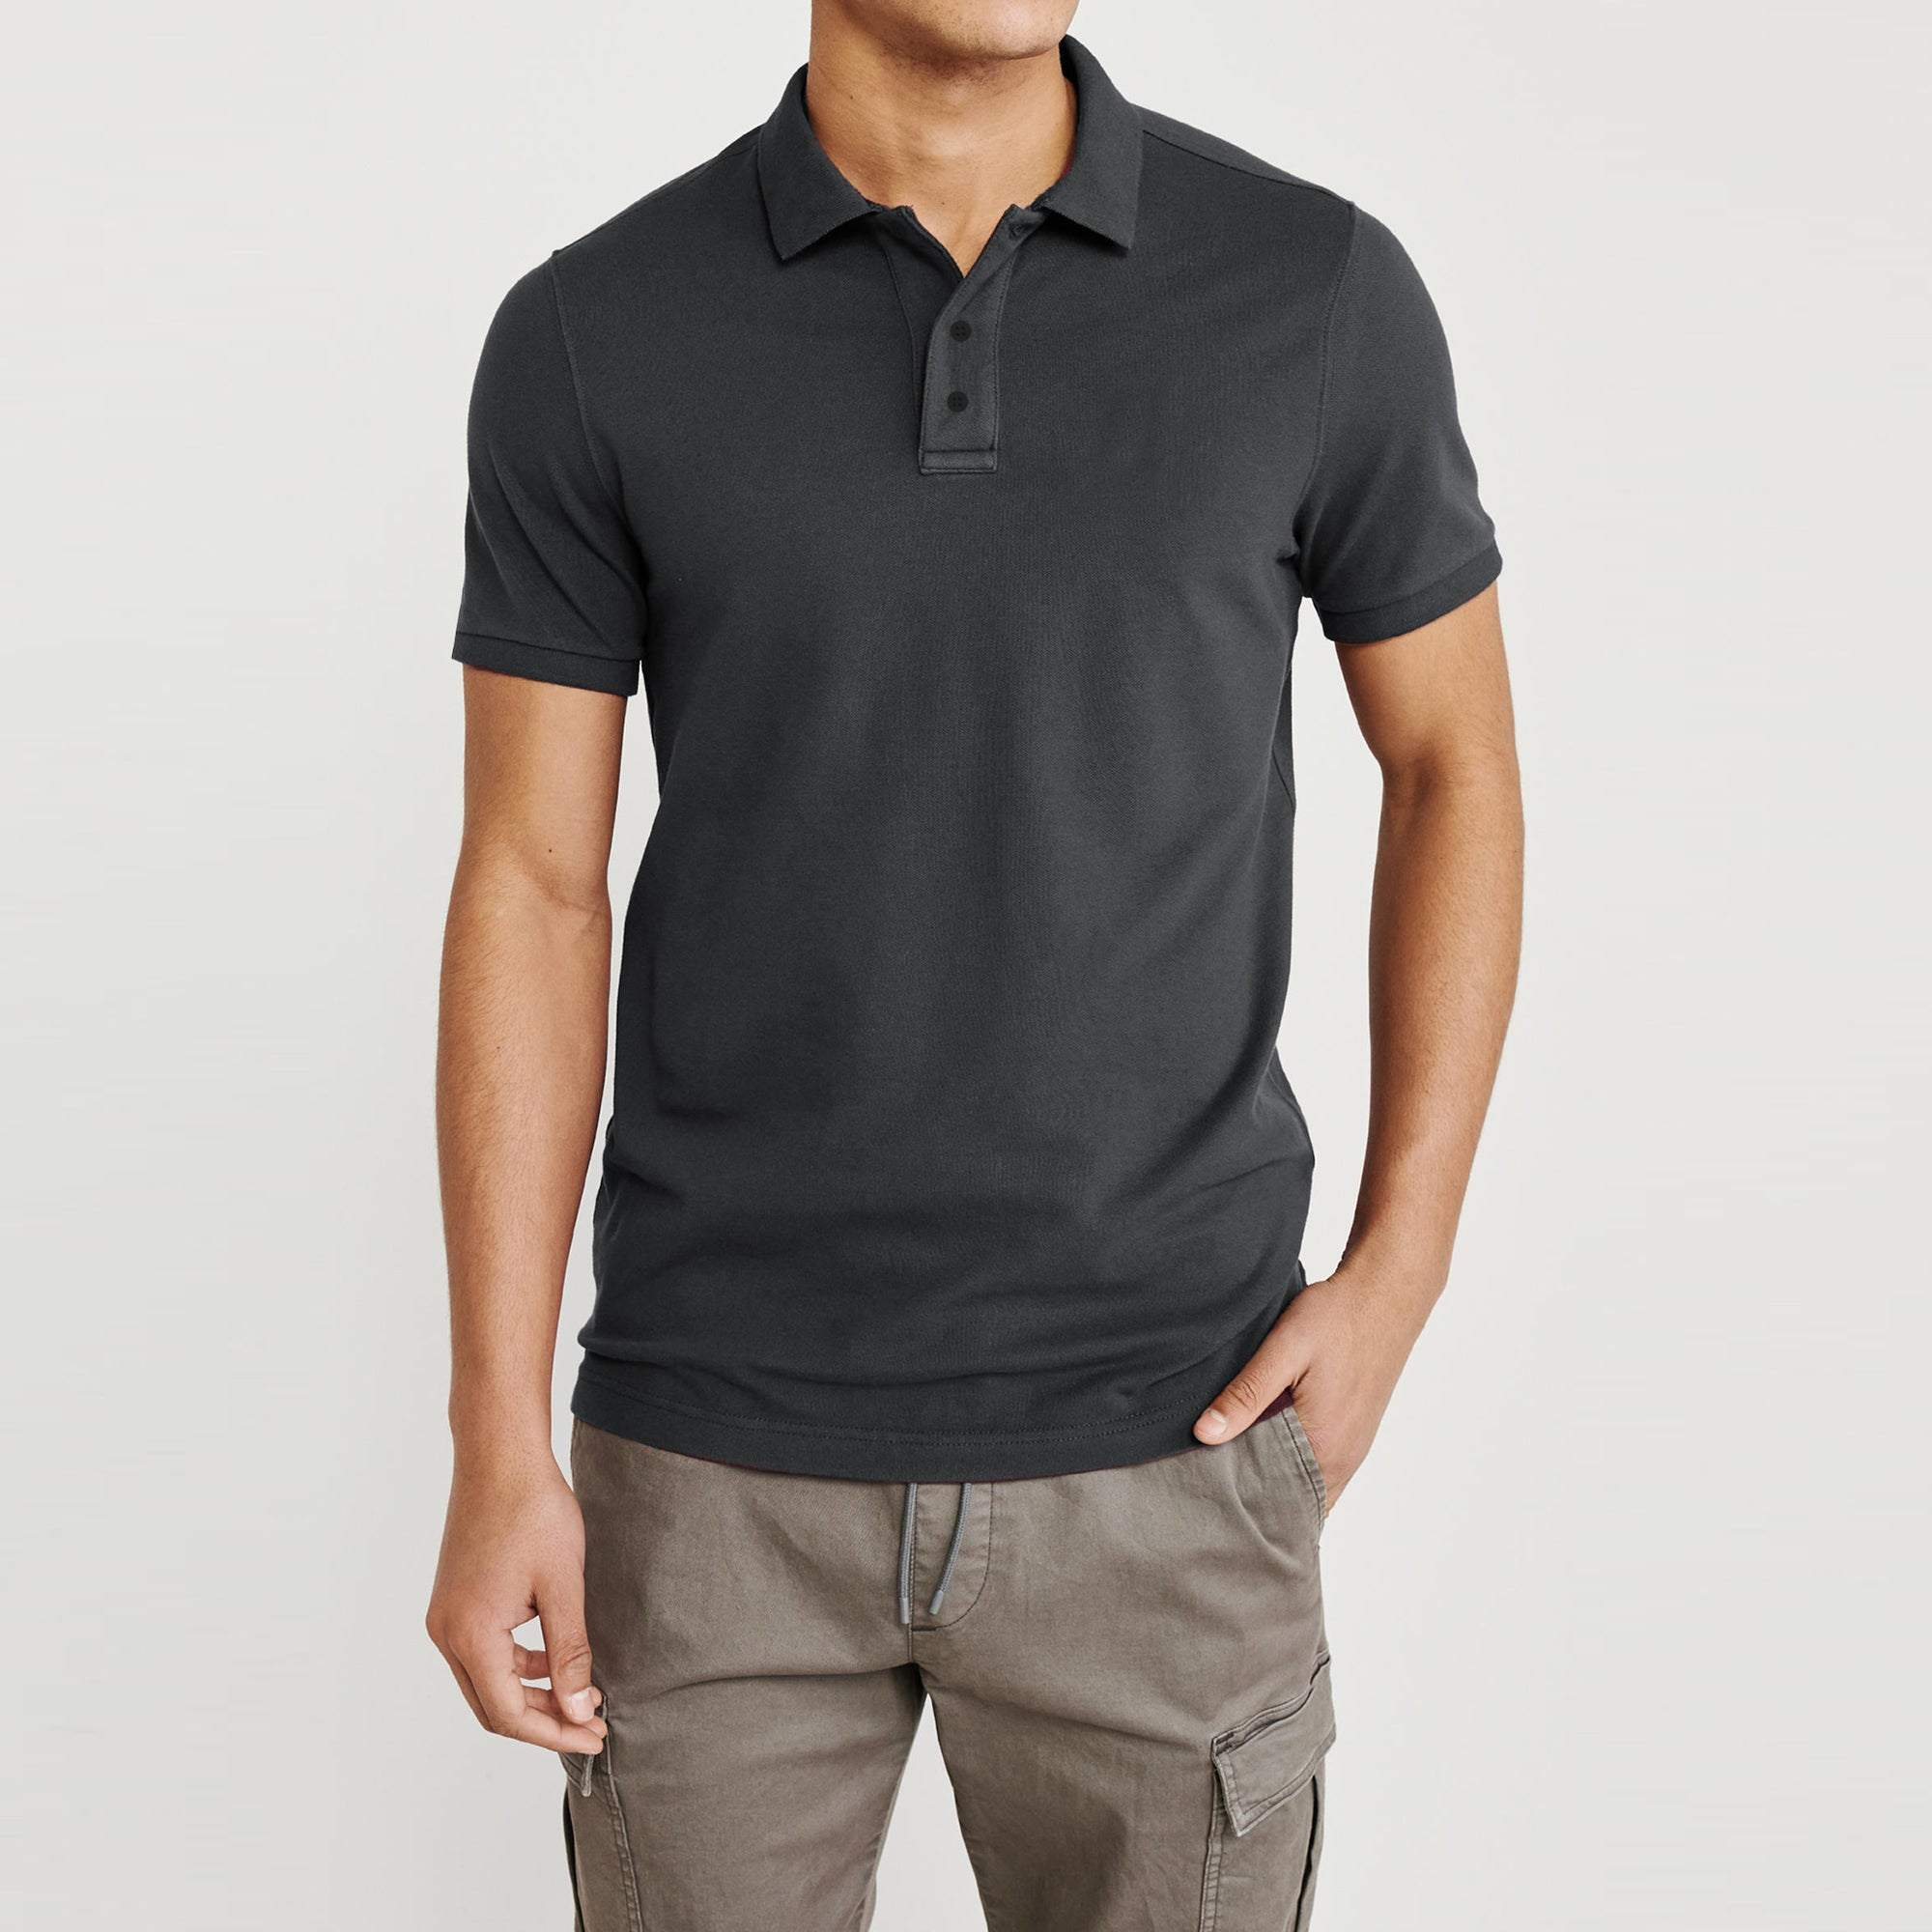 Basic Edition P.Q Short Sleeve Polo Shirt For Men-Dark Grey-BE9120